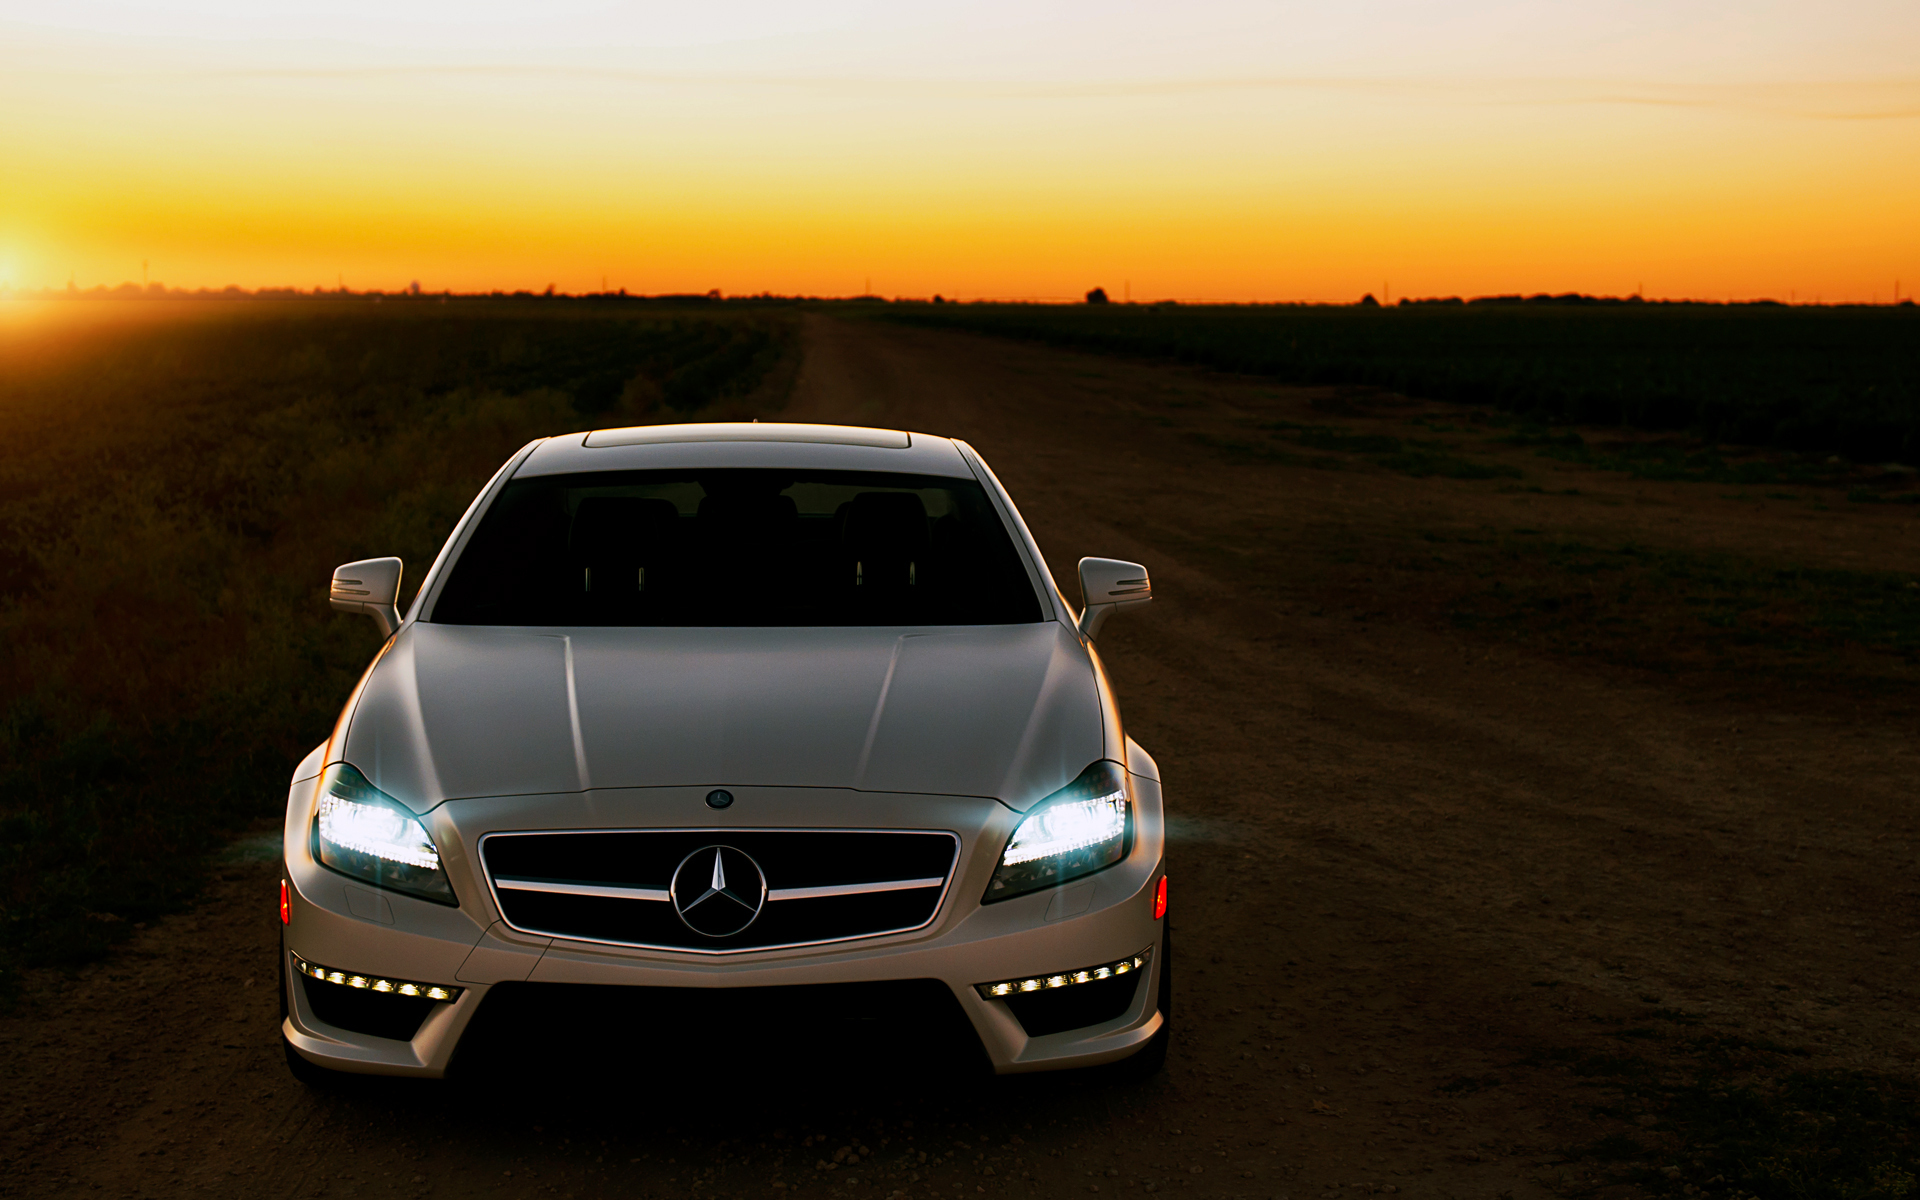 White Mercedes Benz Cls 63 Amg Wallpapers 1920x1200